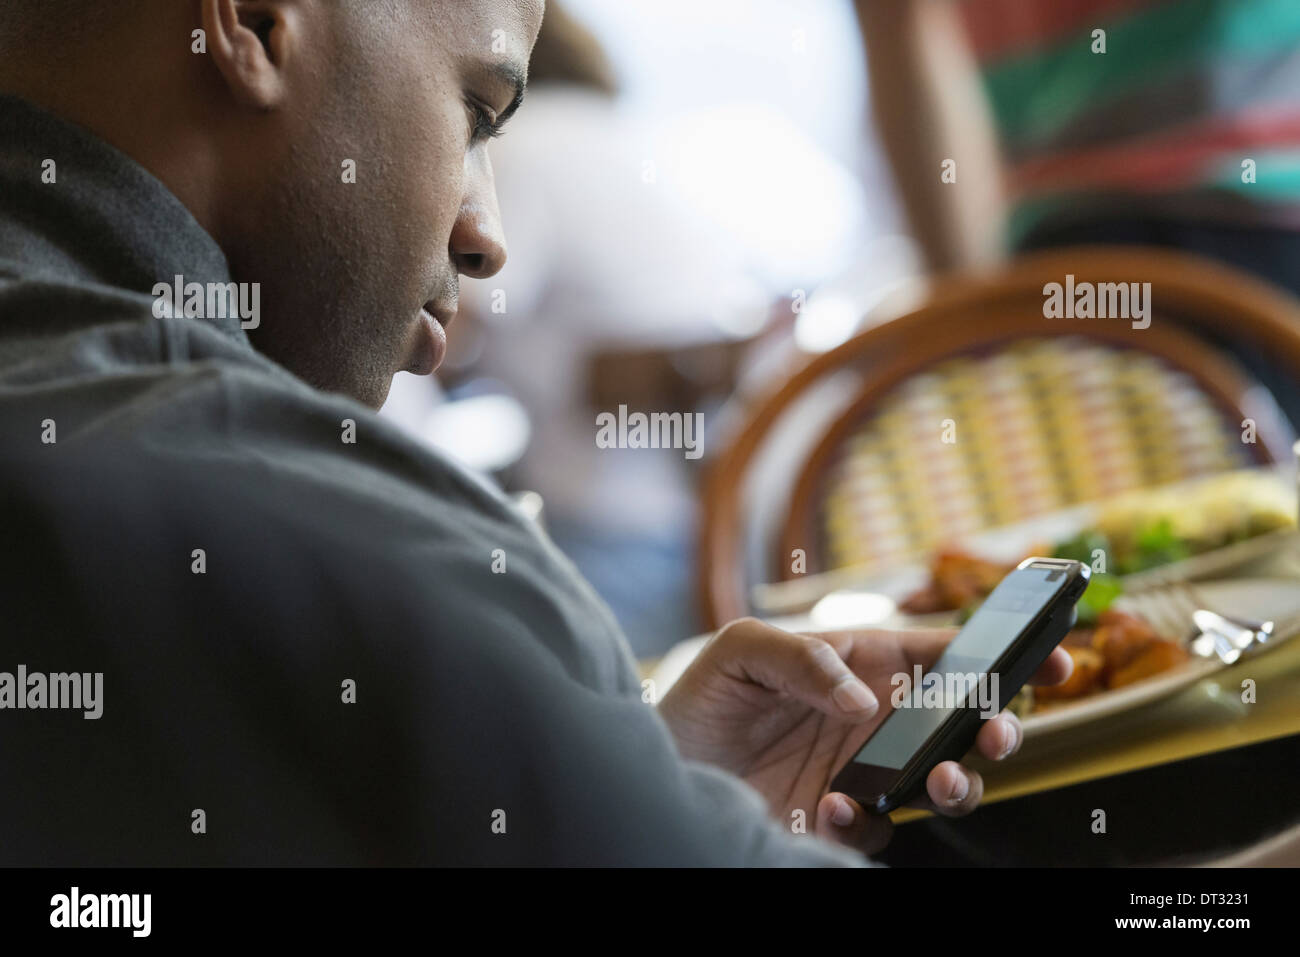 A man seated in a cafe checking his smart phone - Stock Image